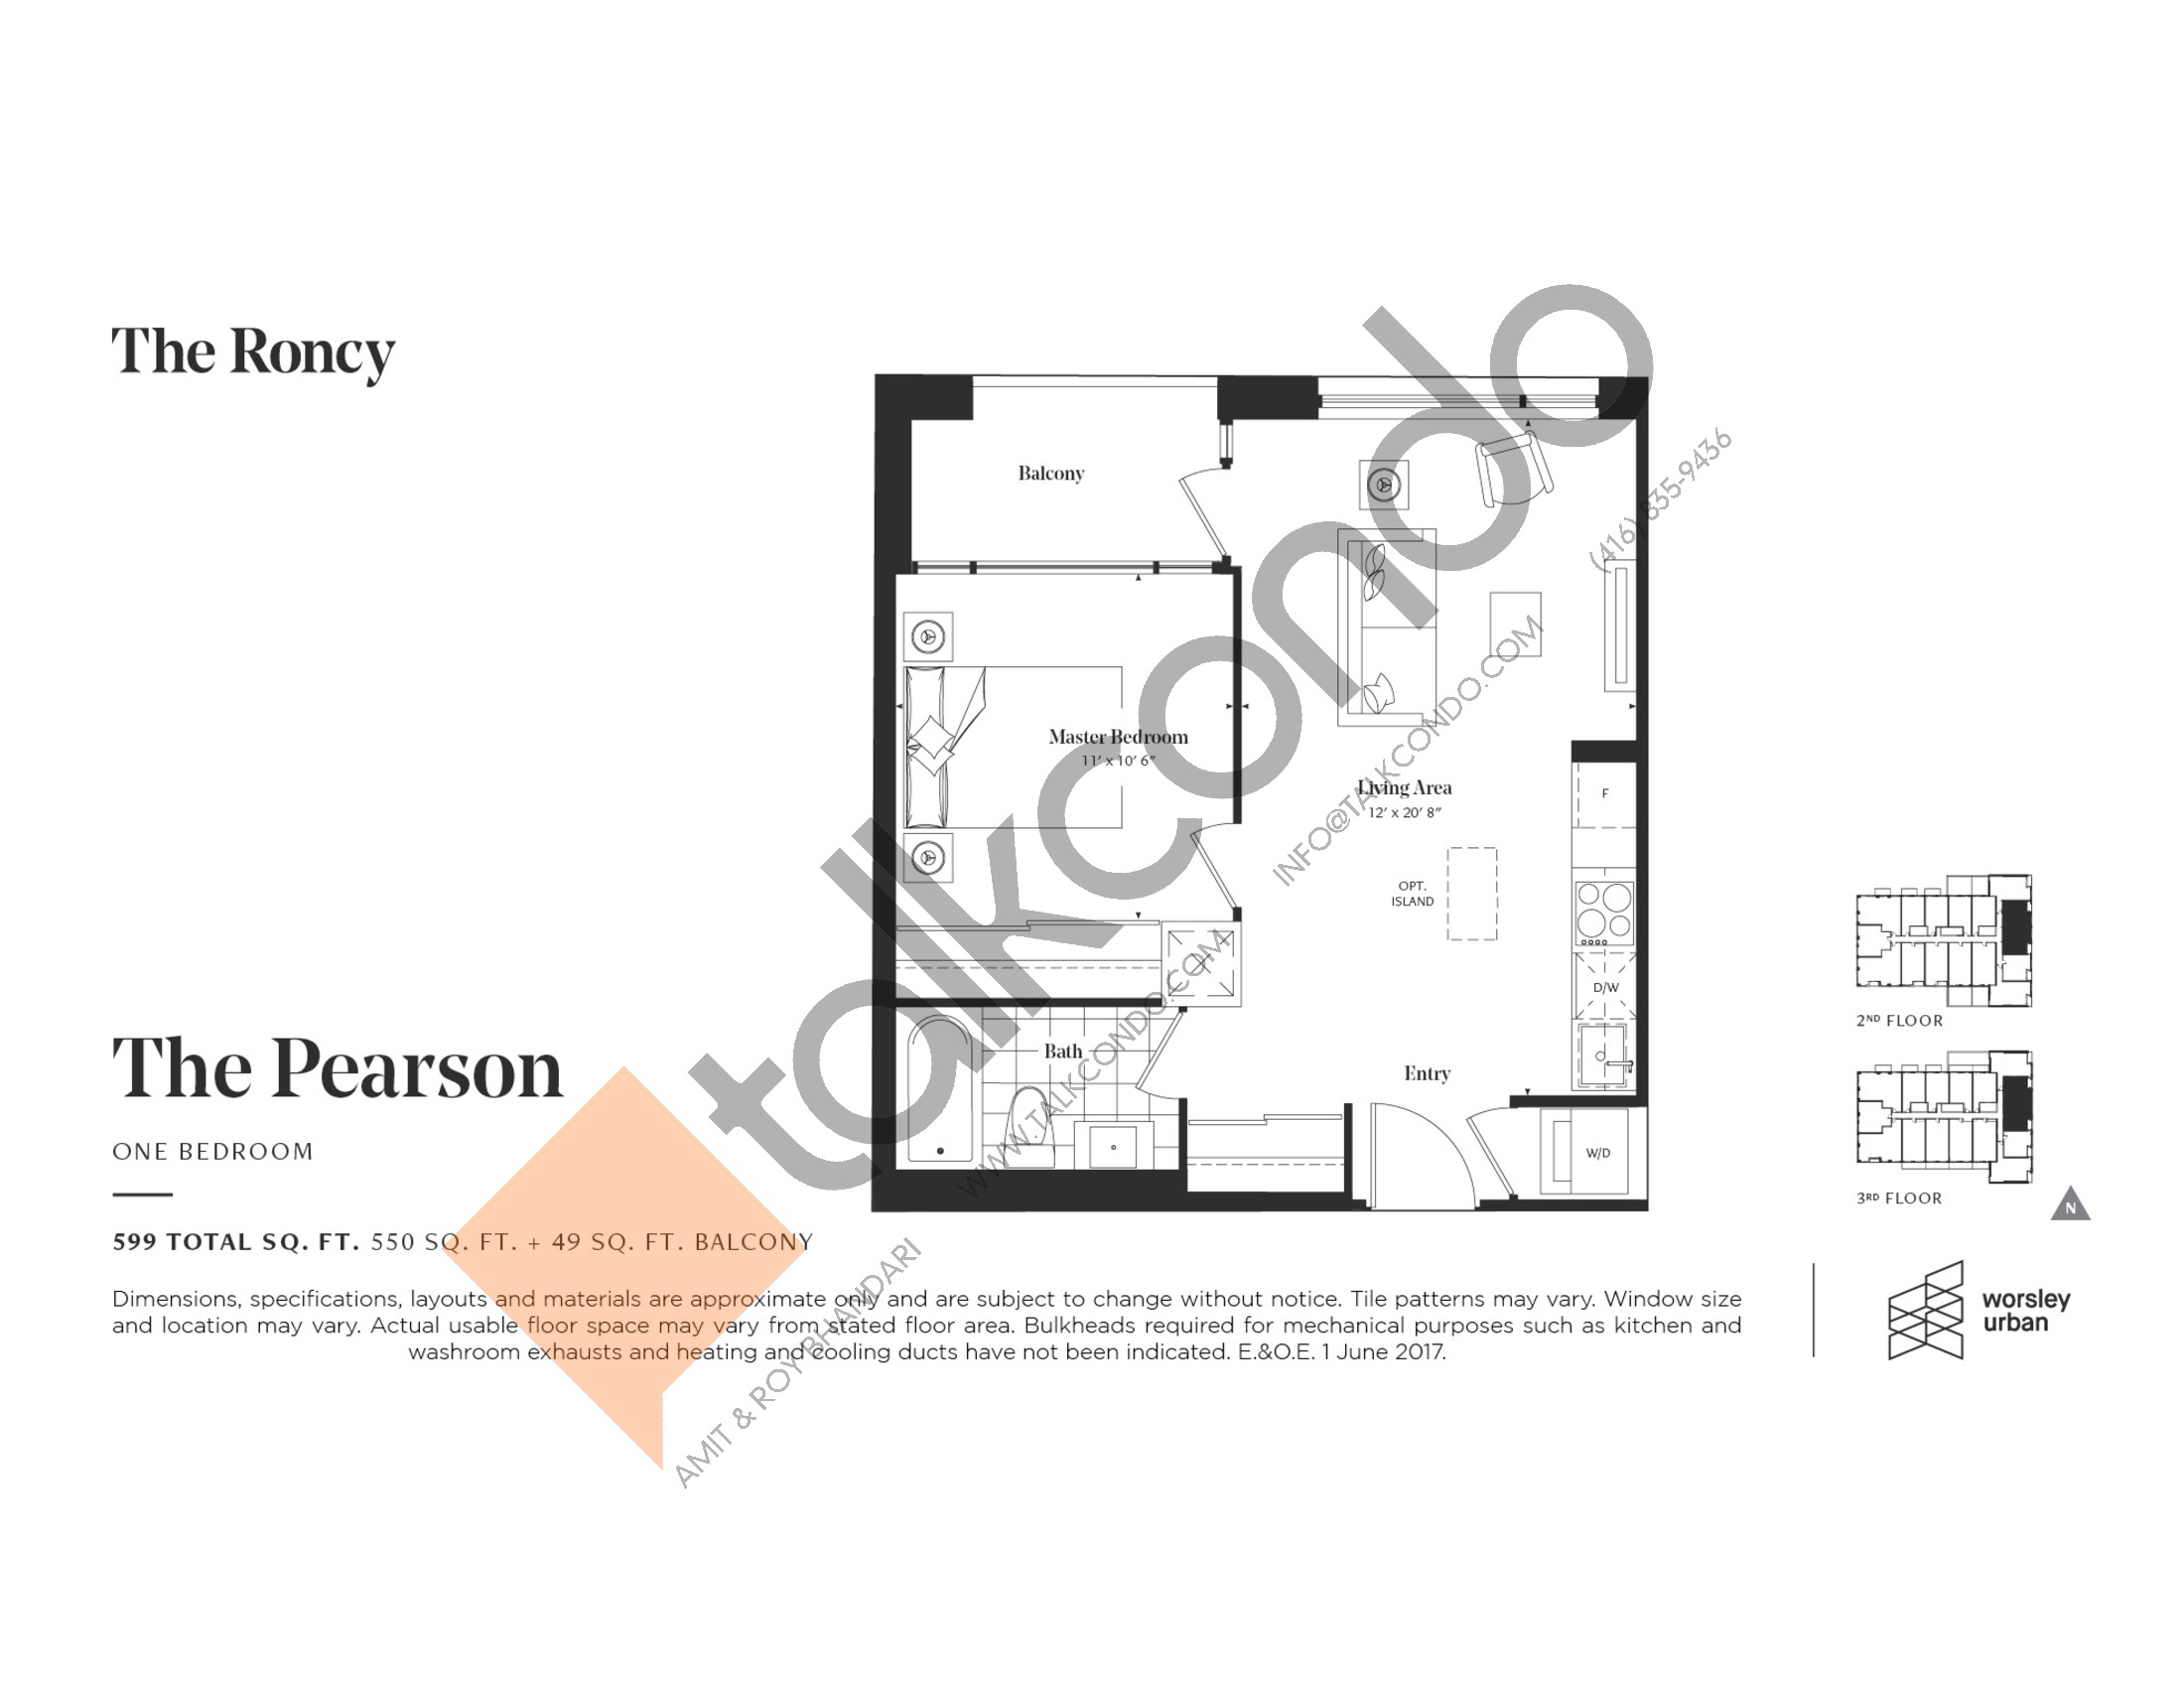 The Pearson Floor Plan at The Roncy Condos - 550 sq.ft